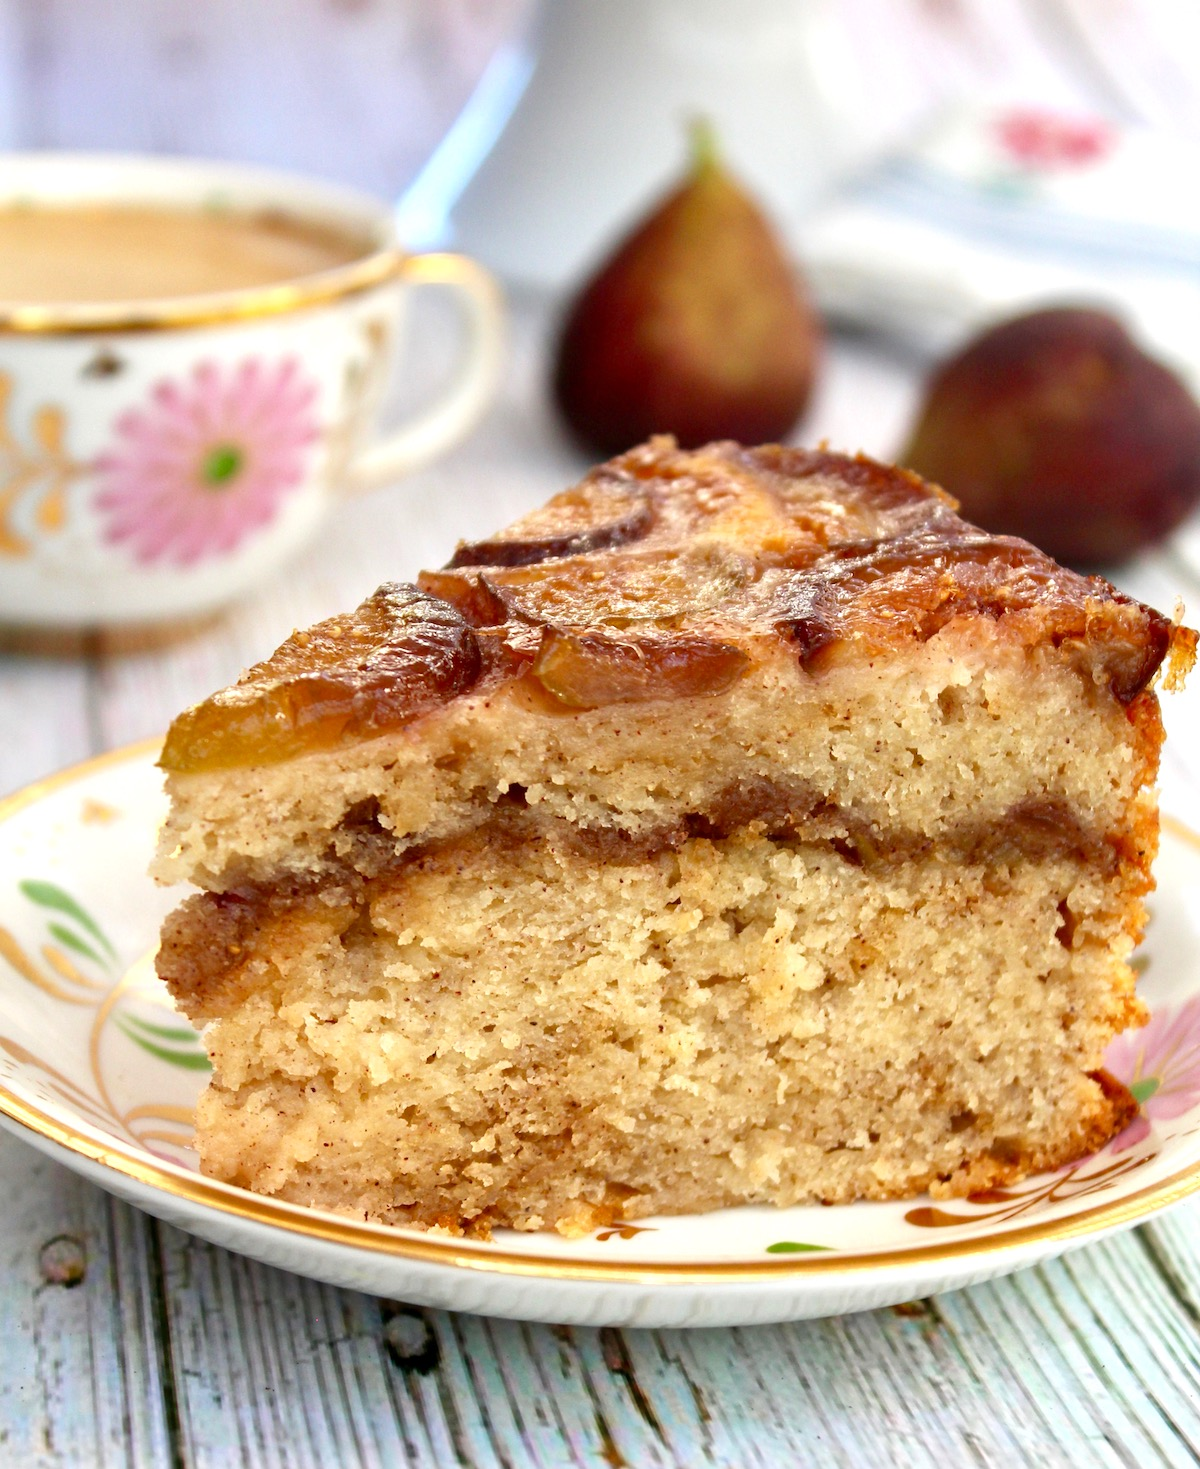 large slice of fig coffee cake on small floral plate